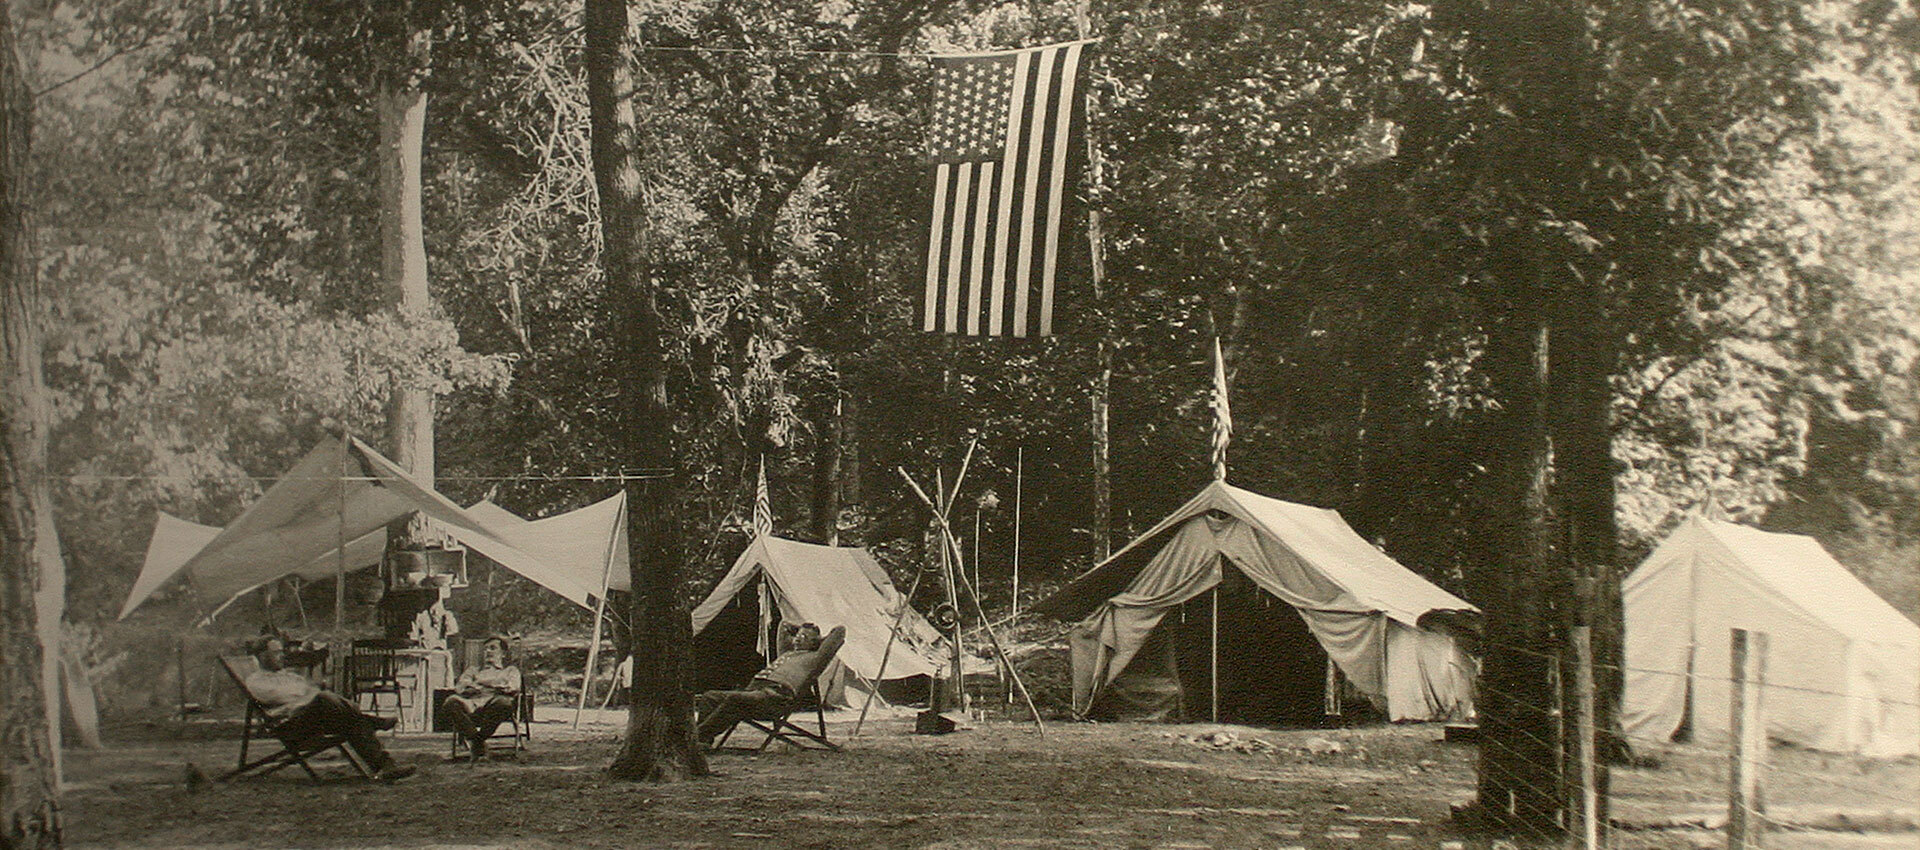 Vintage photograph of a row of Wenzel tents